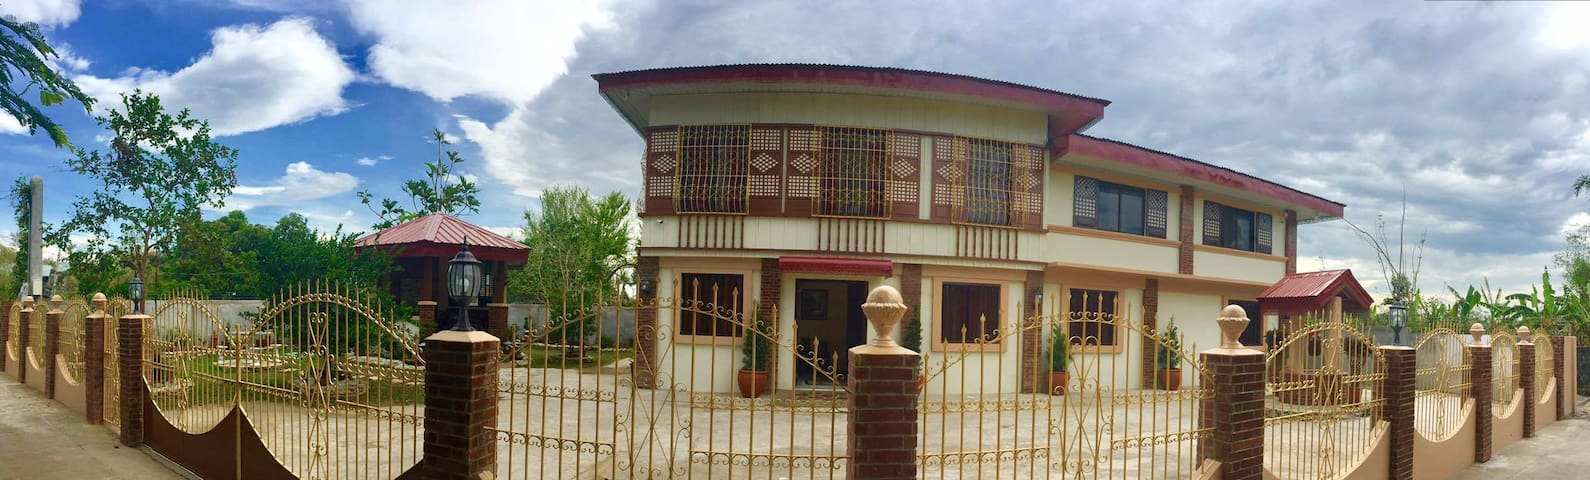 Jellijoh Place Vigan City is a heritage guesthouse - Vigan City